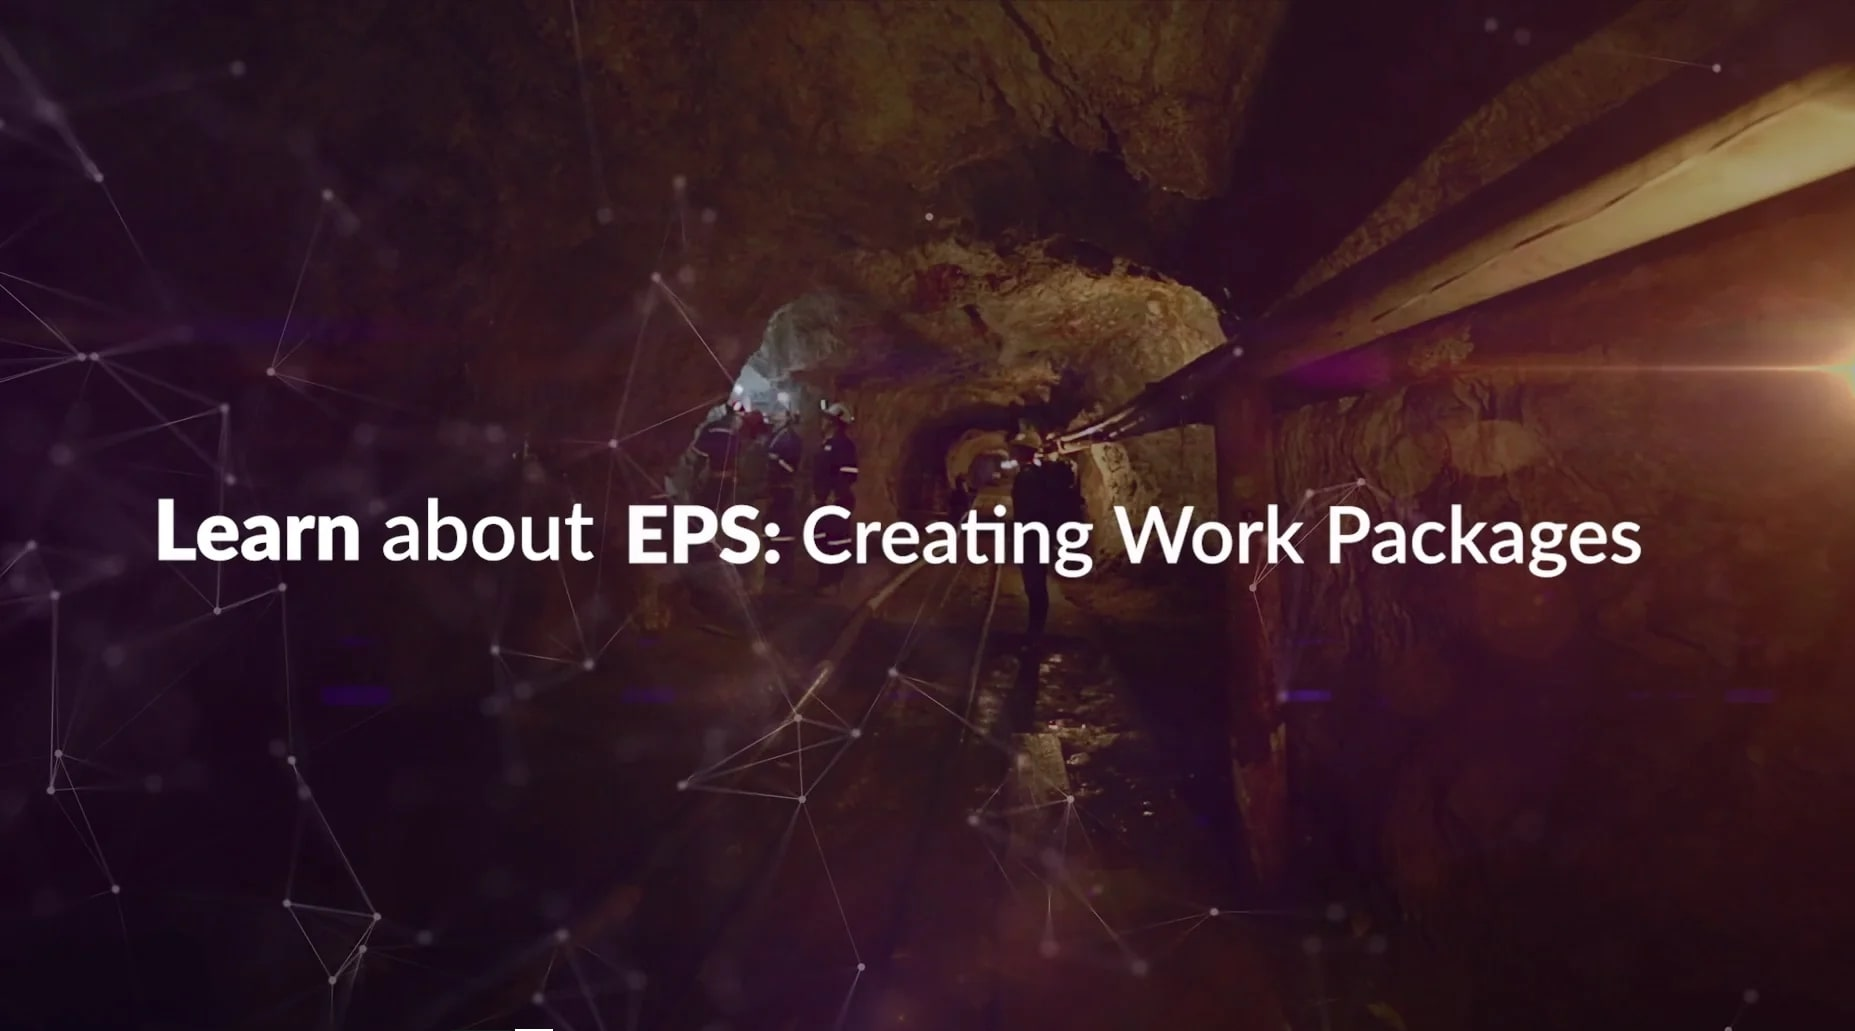 Learn about EPS